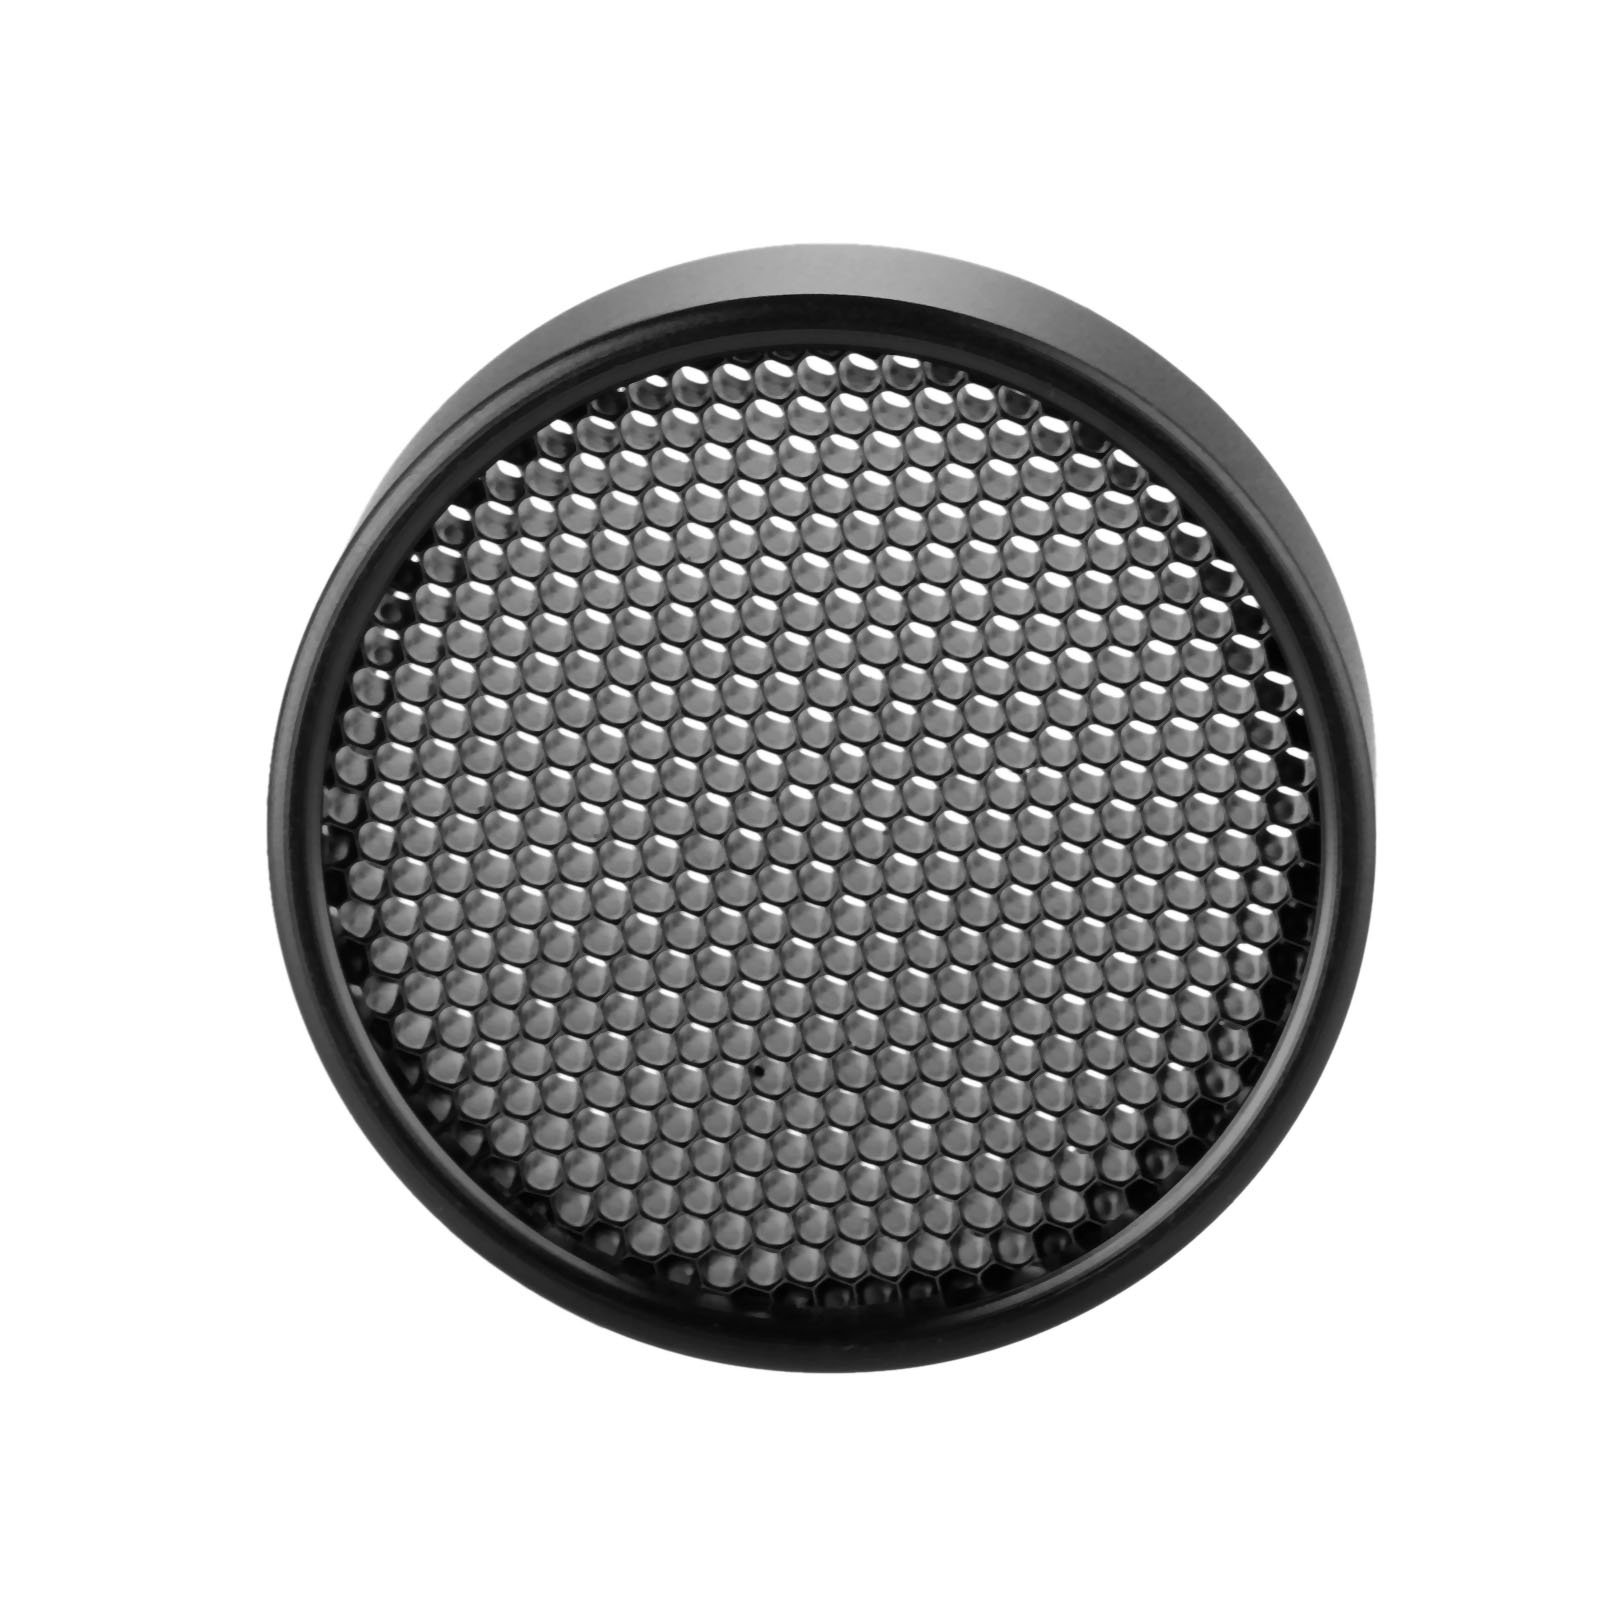 Killflash 40mm Anti-reflection Sunshade Protect Cover Cap For Trijicon DR 1-4X Optic Sight Scope Honeycomb Mesh Scope ProtectorKillflash 40mm Anti-reflection Sunshade Protect Cover Cap For Trijicon DR 1-4X Optic Sight Scope Honeycomb Mesh Scope Protector